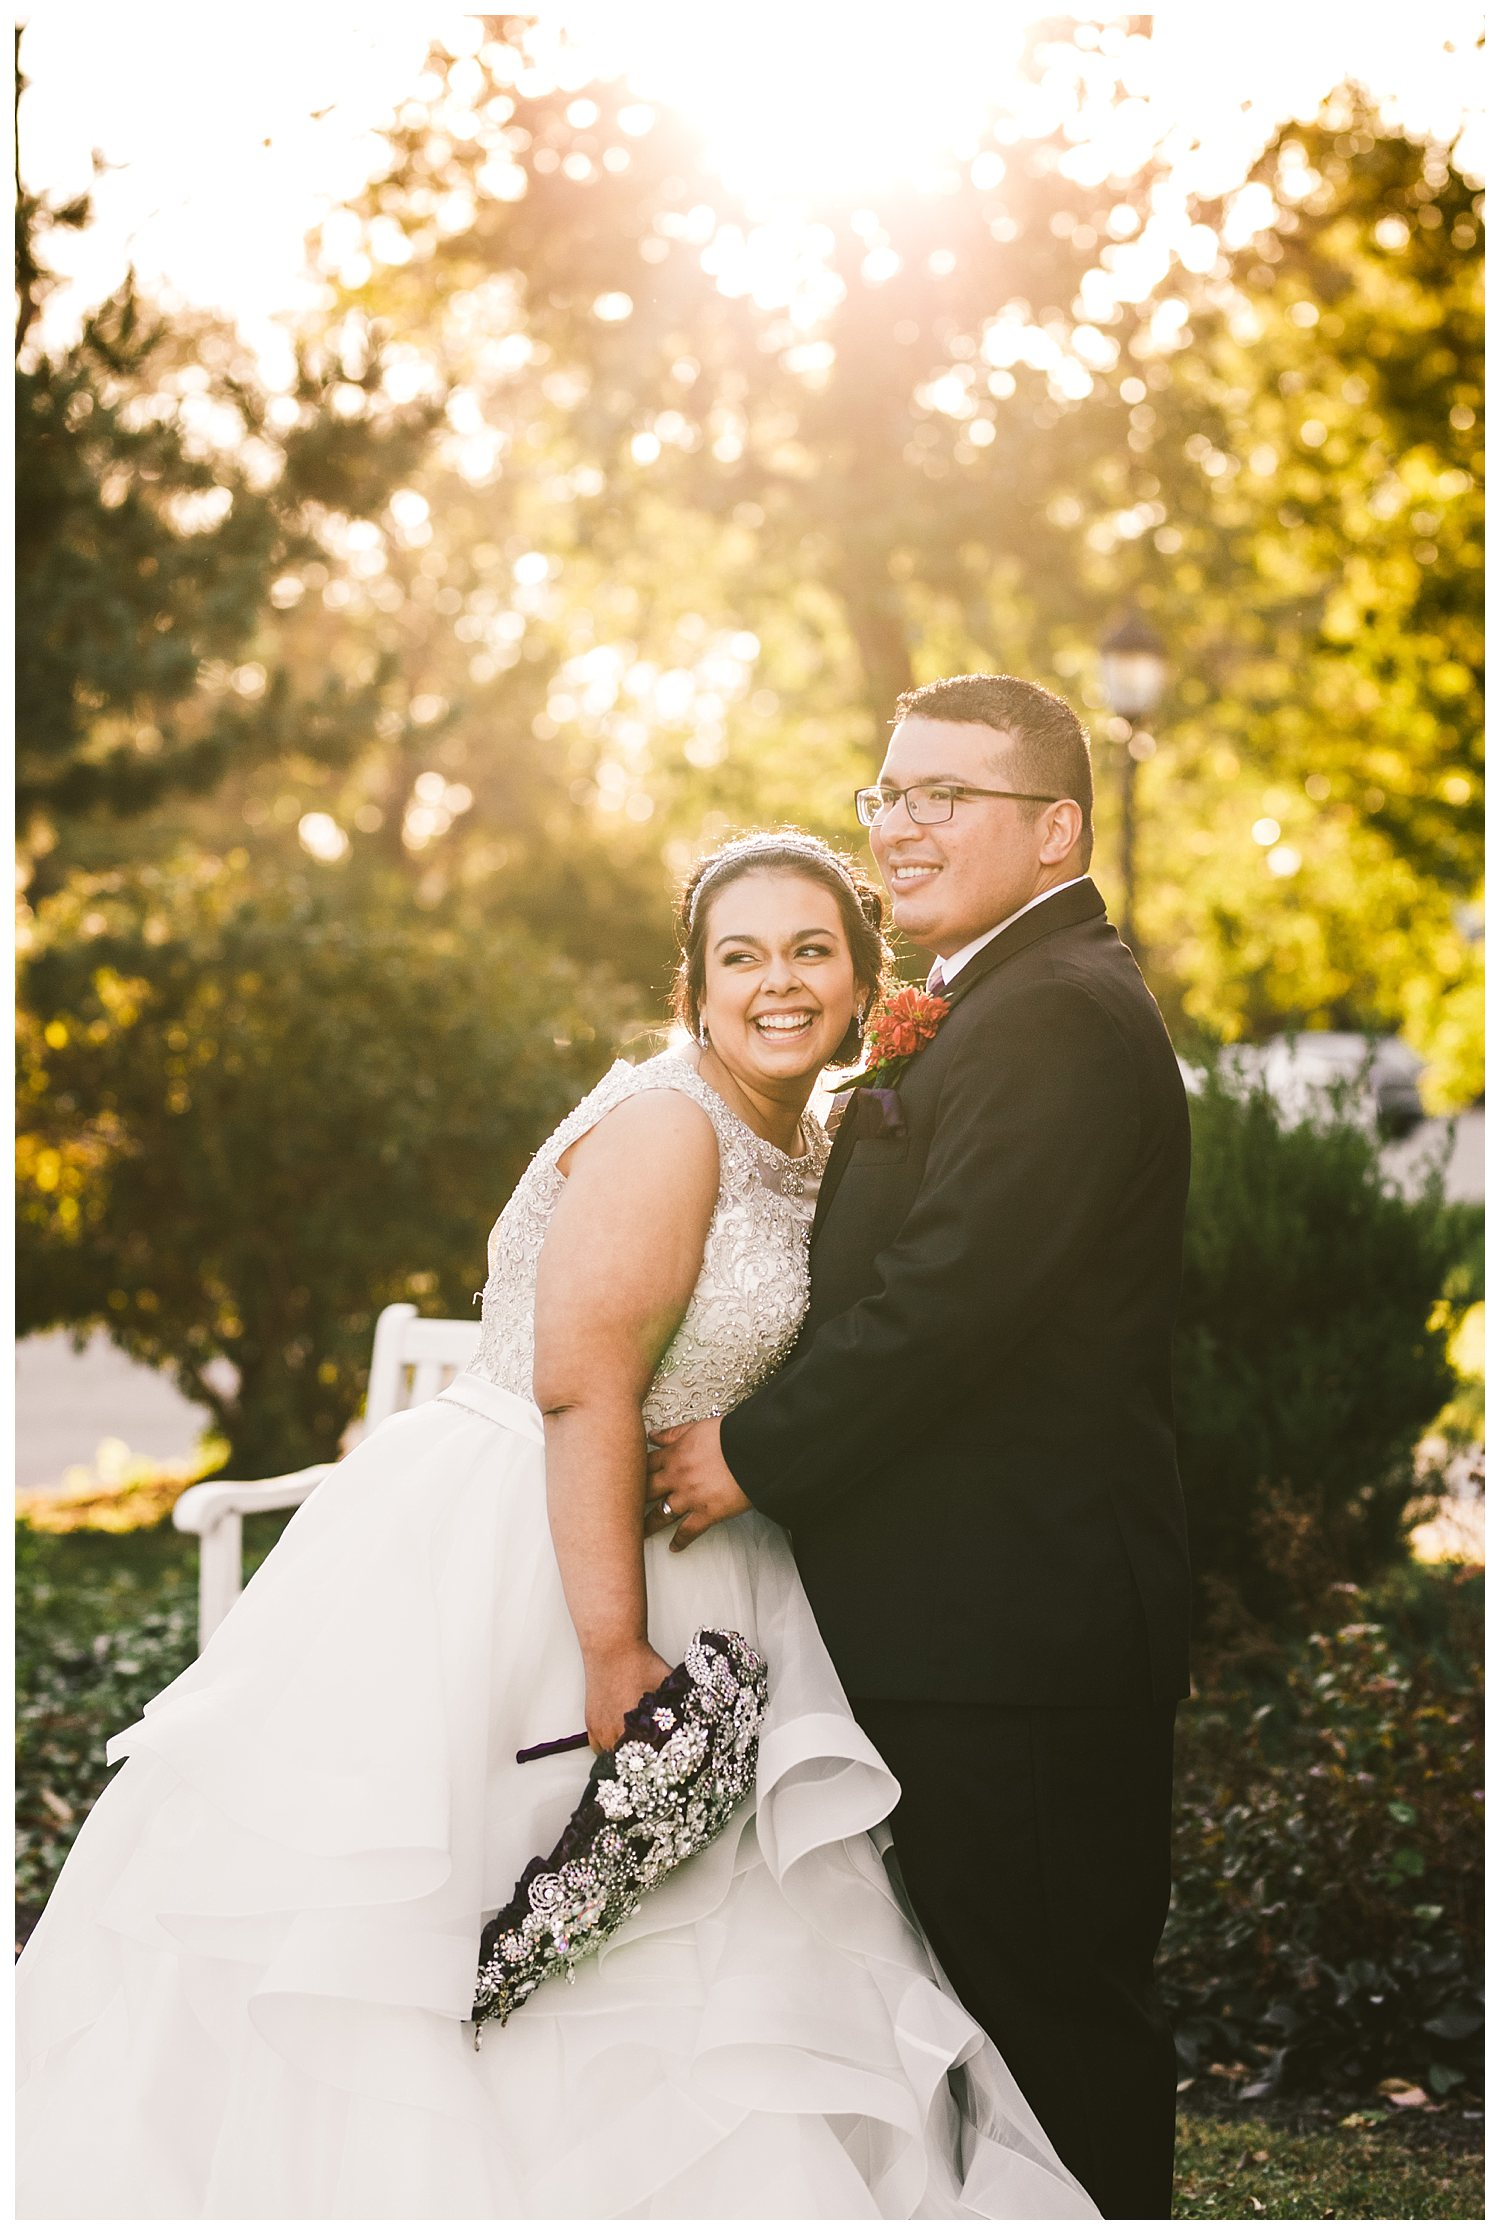 Kelsey_Diane_Photography_Hawthorne_House_Parkville_Kansas_City_Wedding_Veronica_Pat_0055.jpg